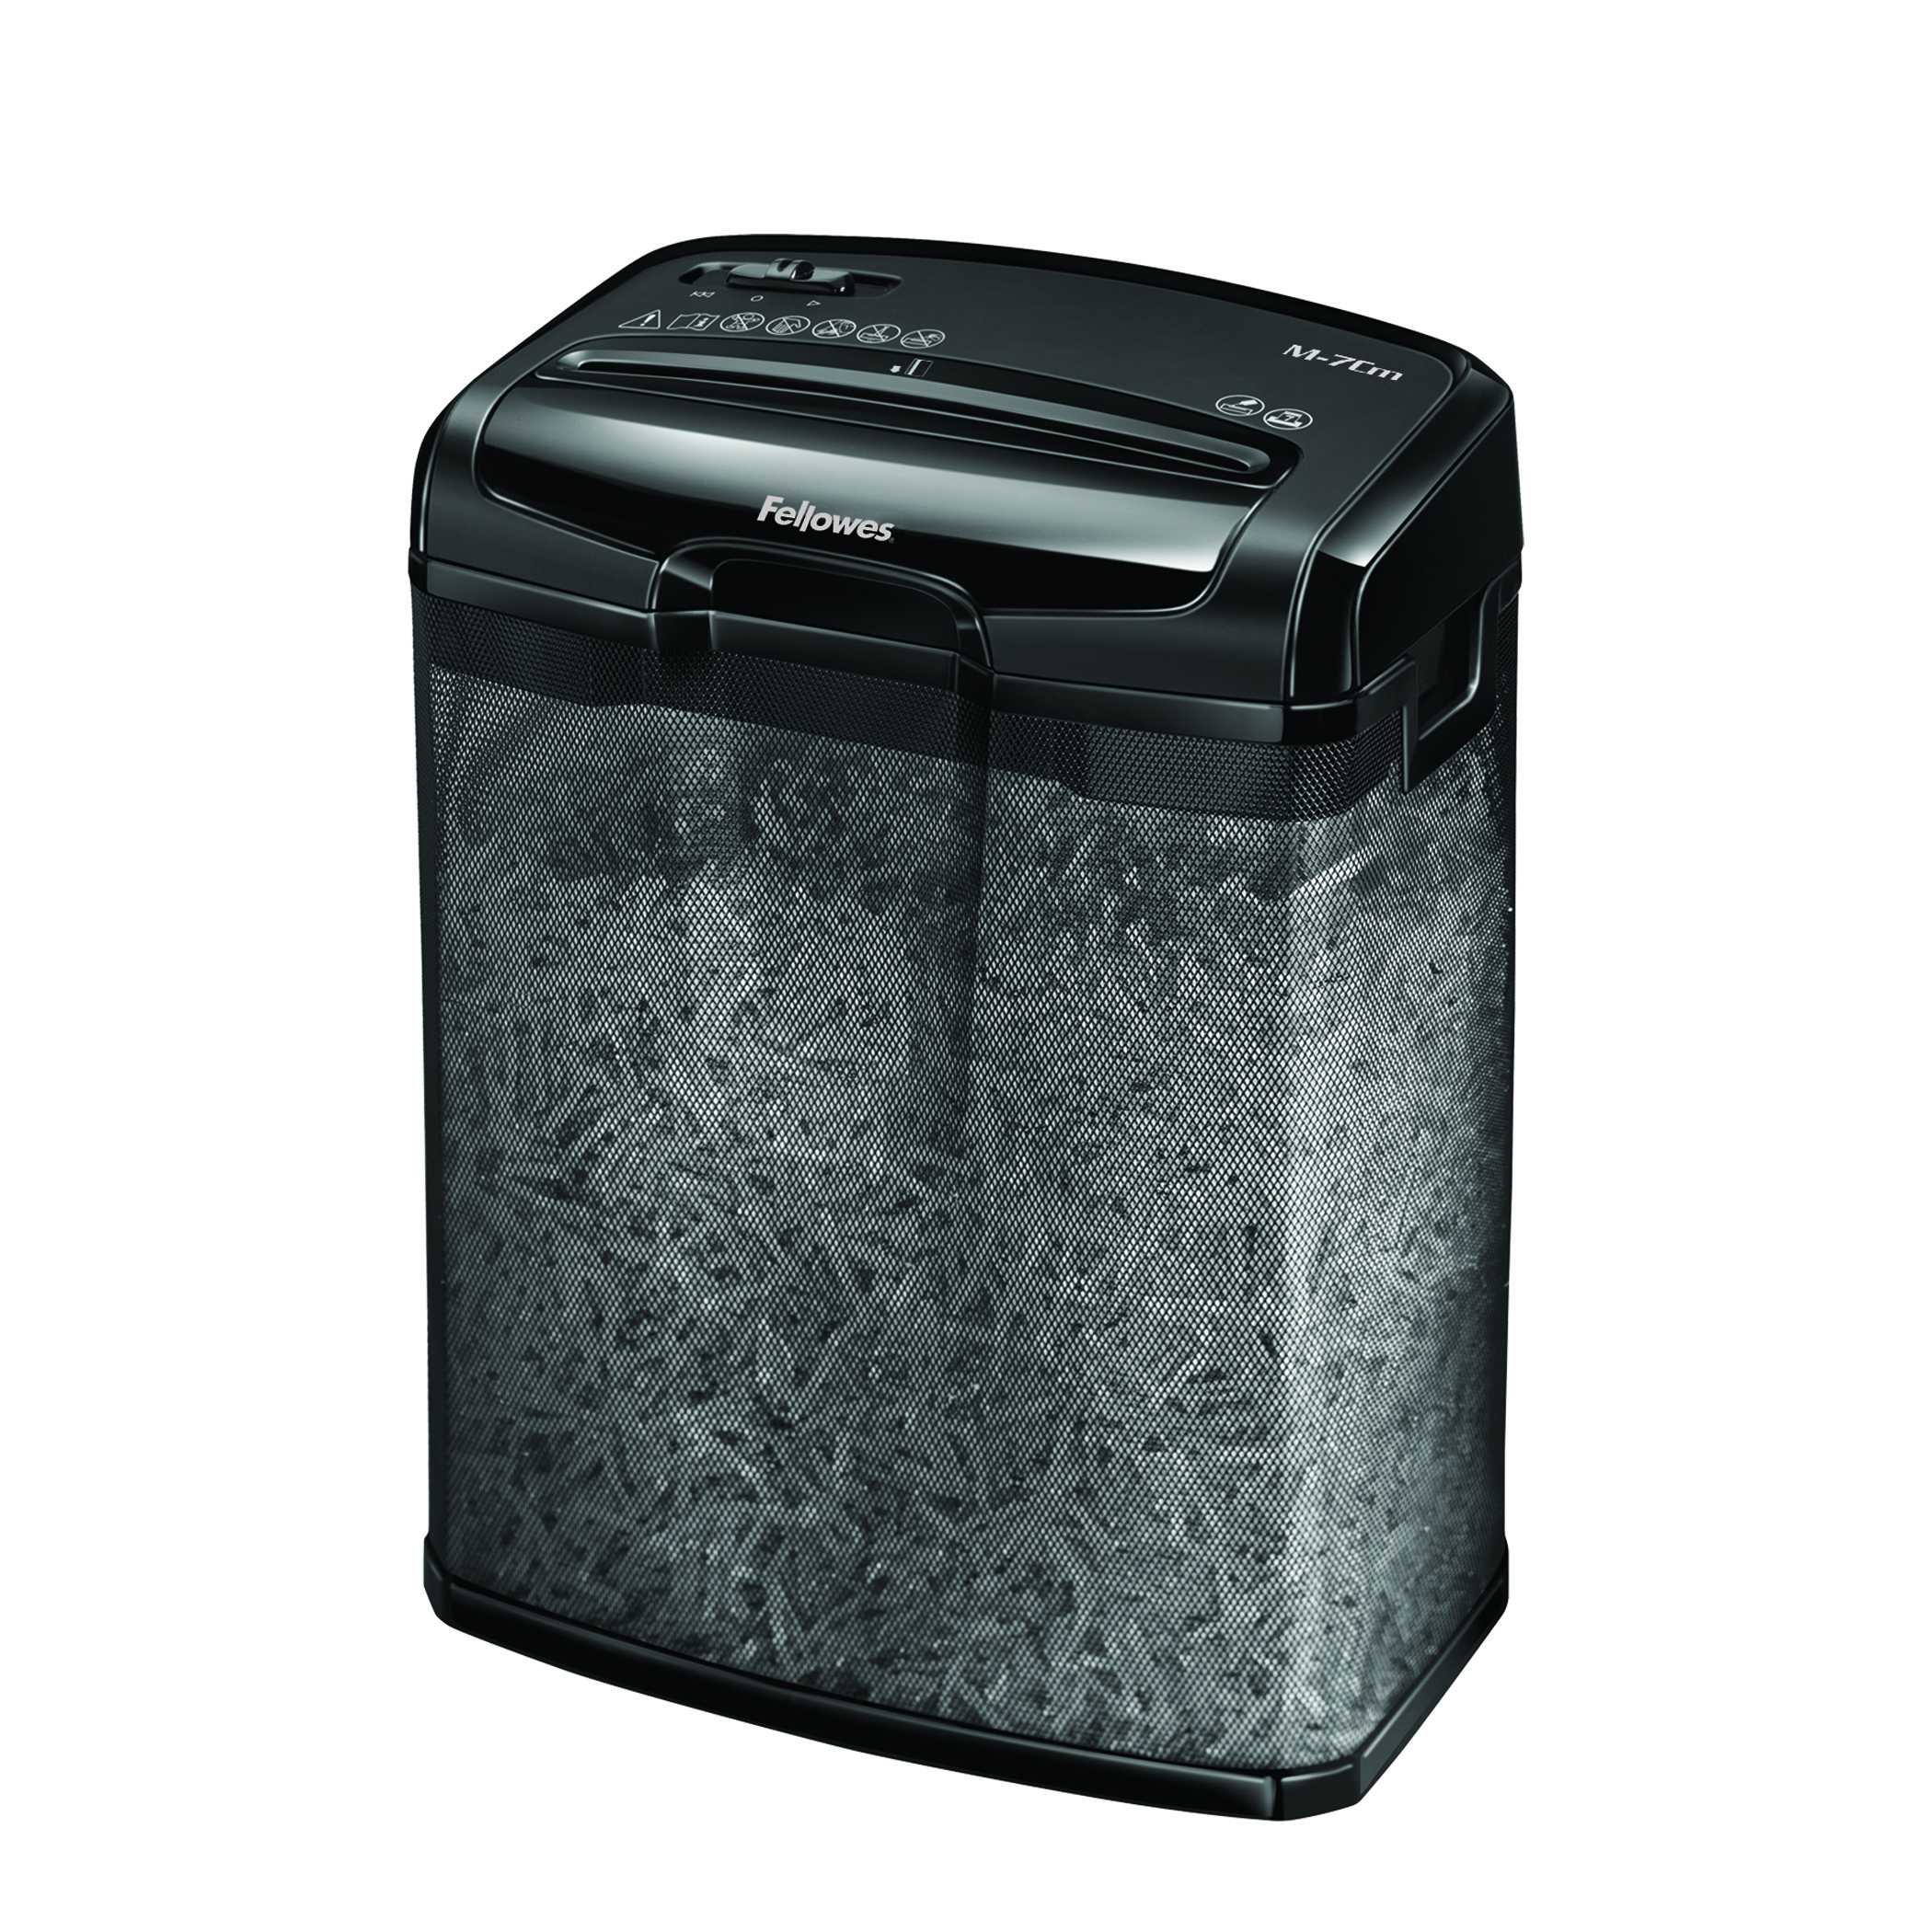 Shredders Fellowes M-7Cm Cross Cut Shredder